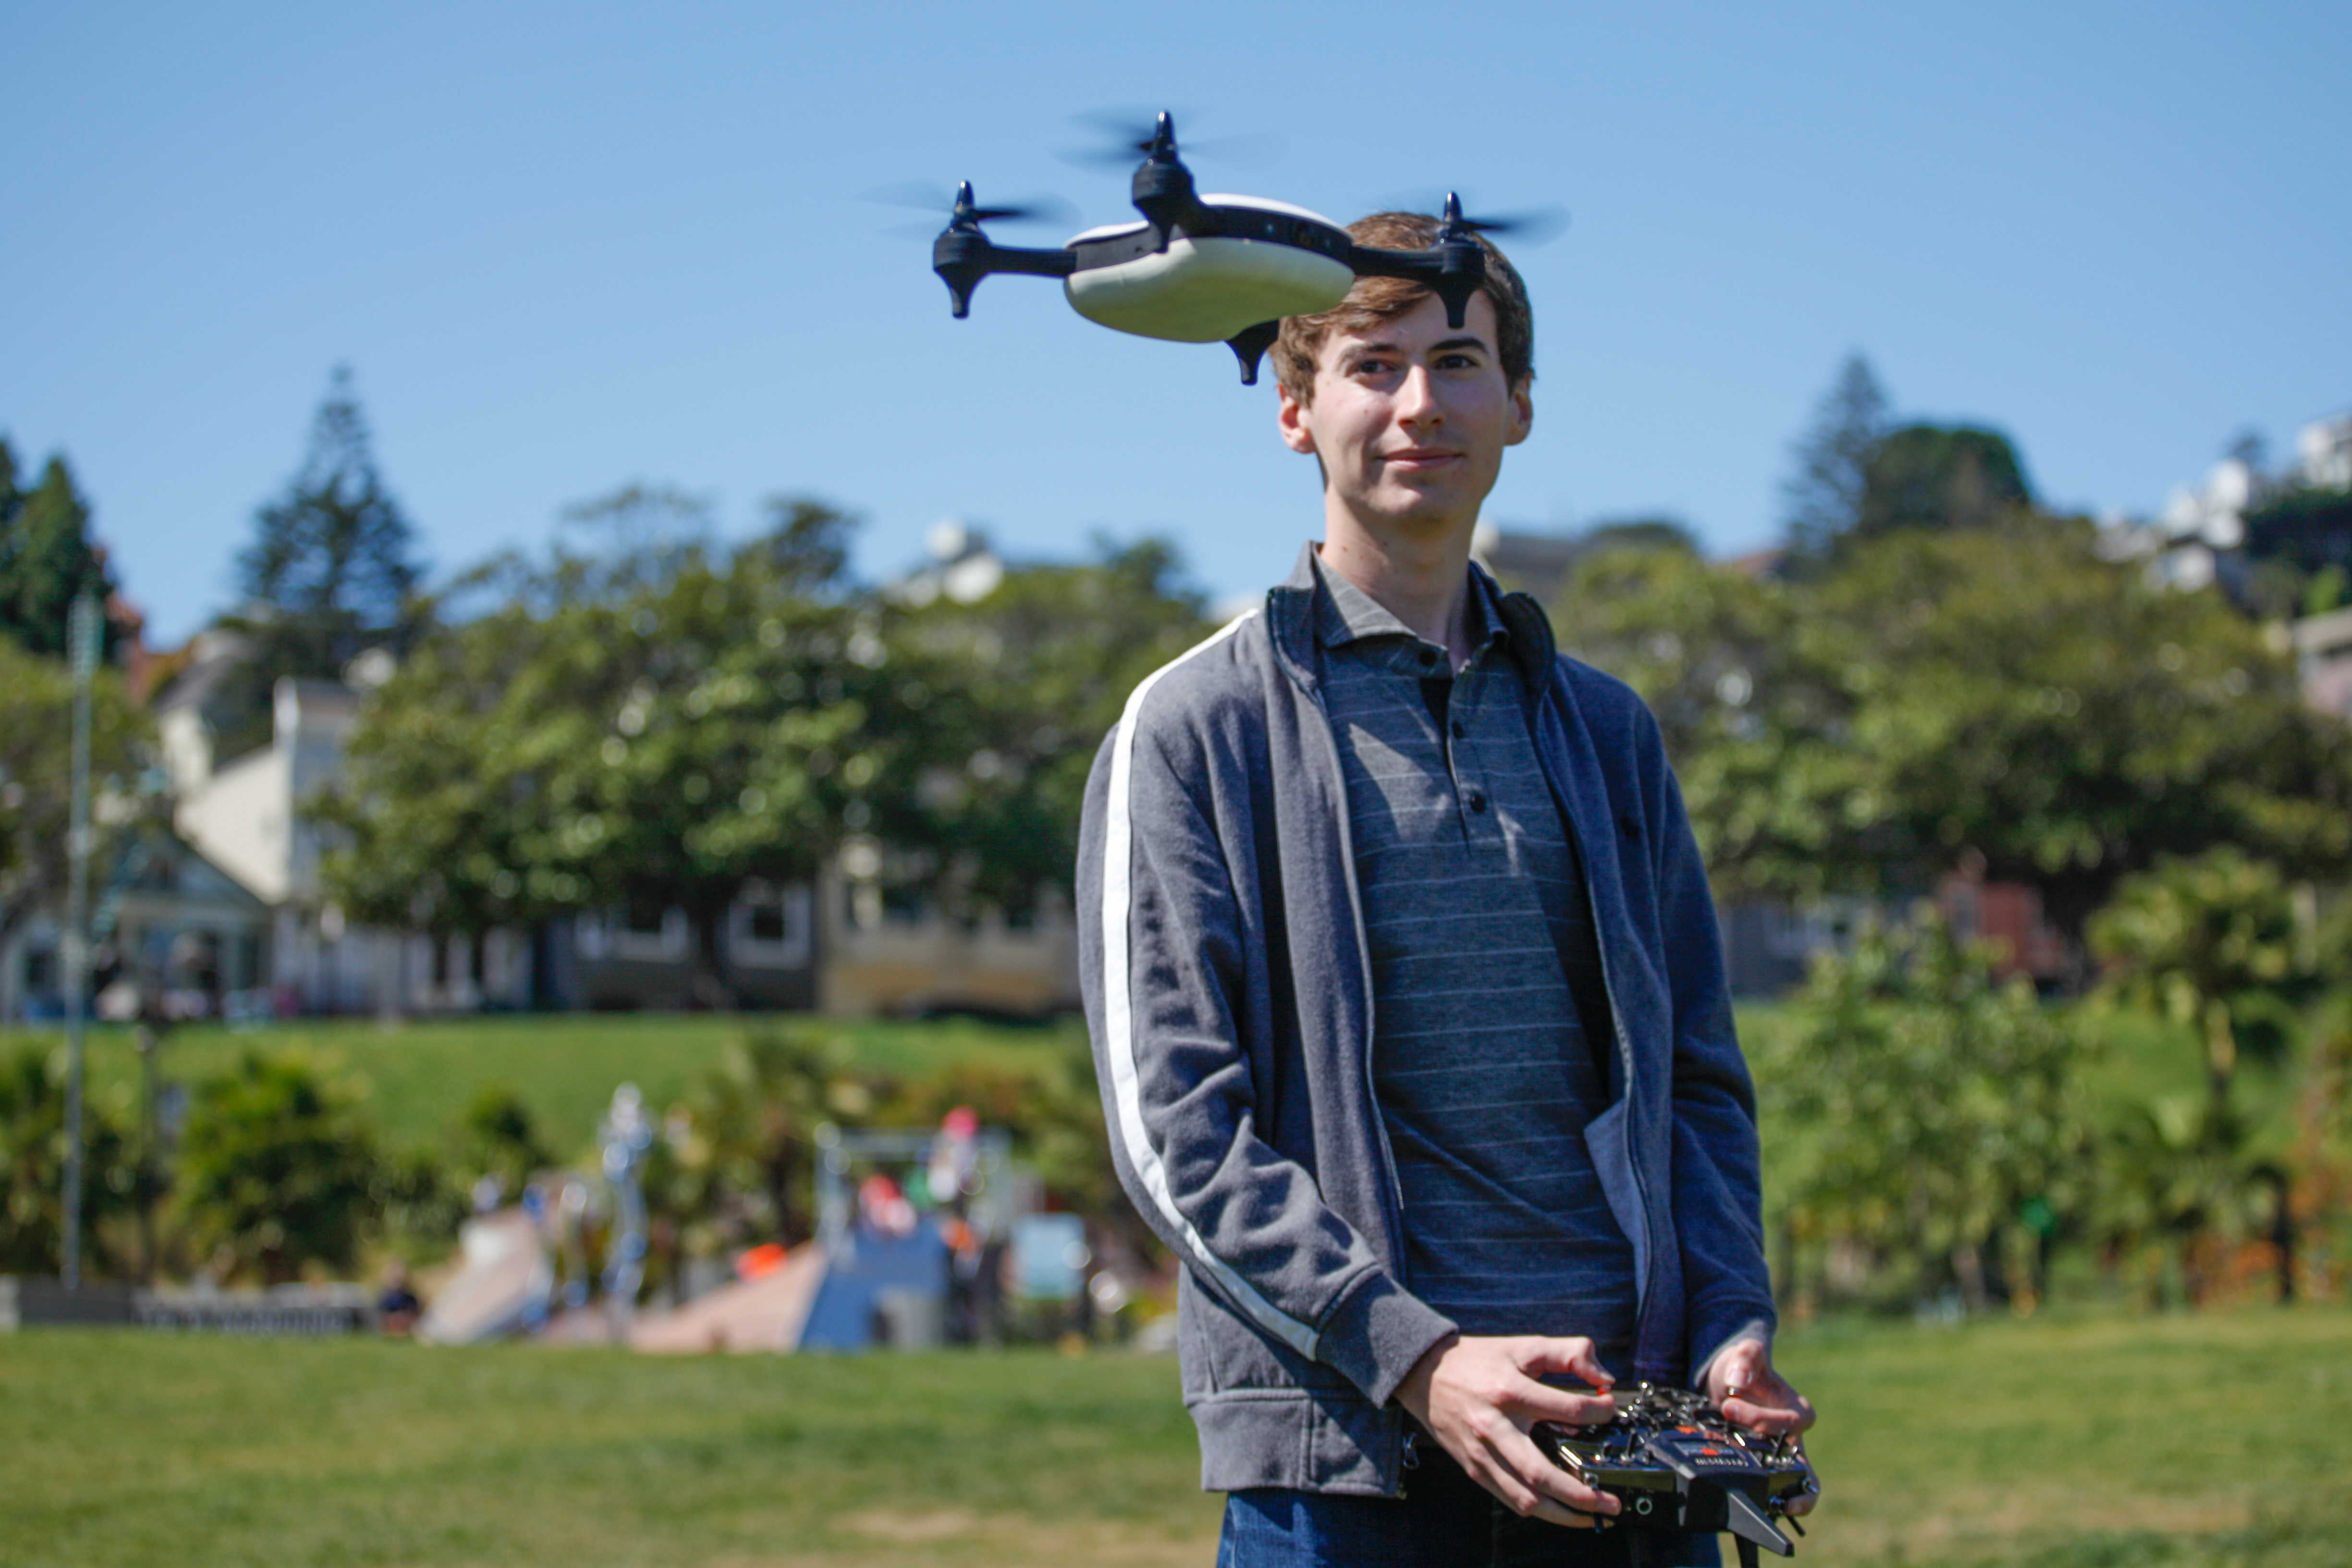 Meet George Matus, the 18-year-old CEO of drone company Teal